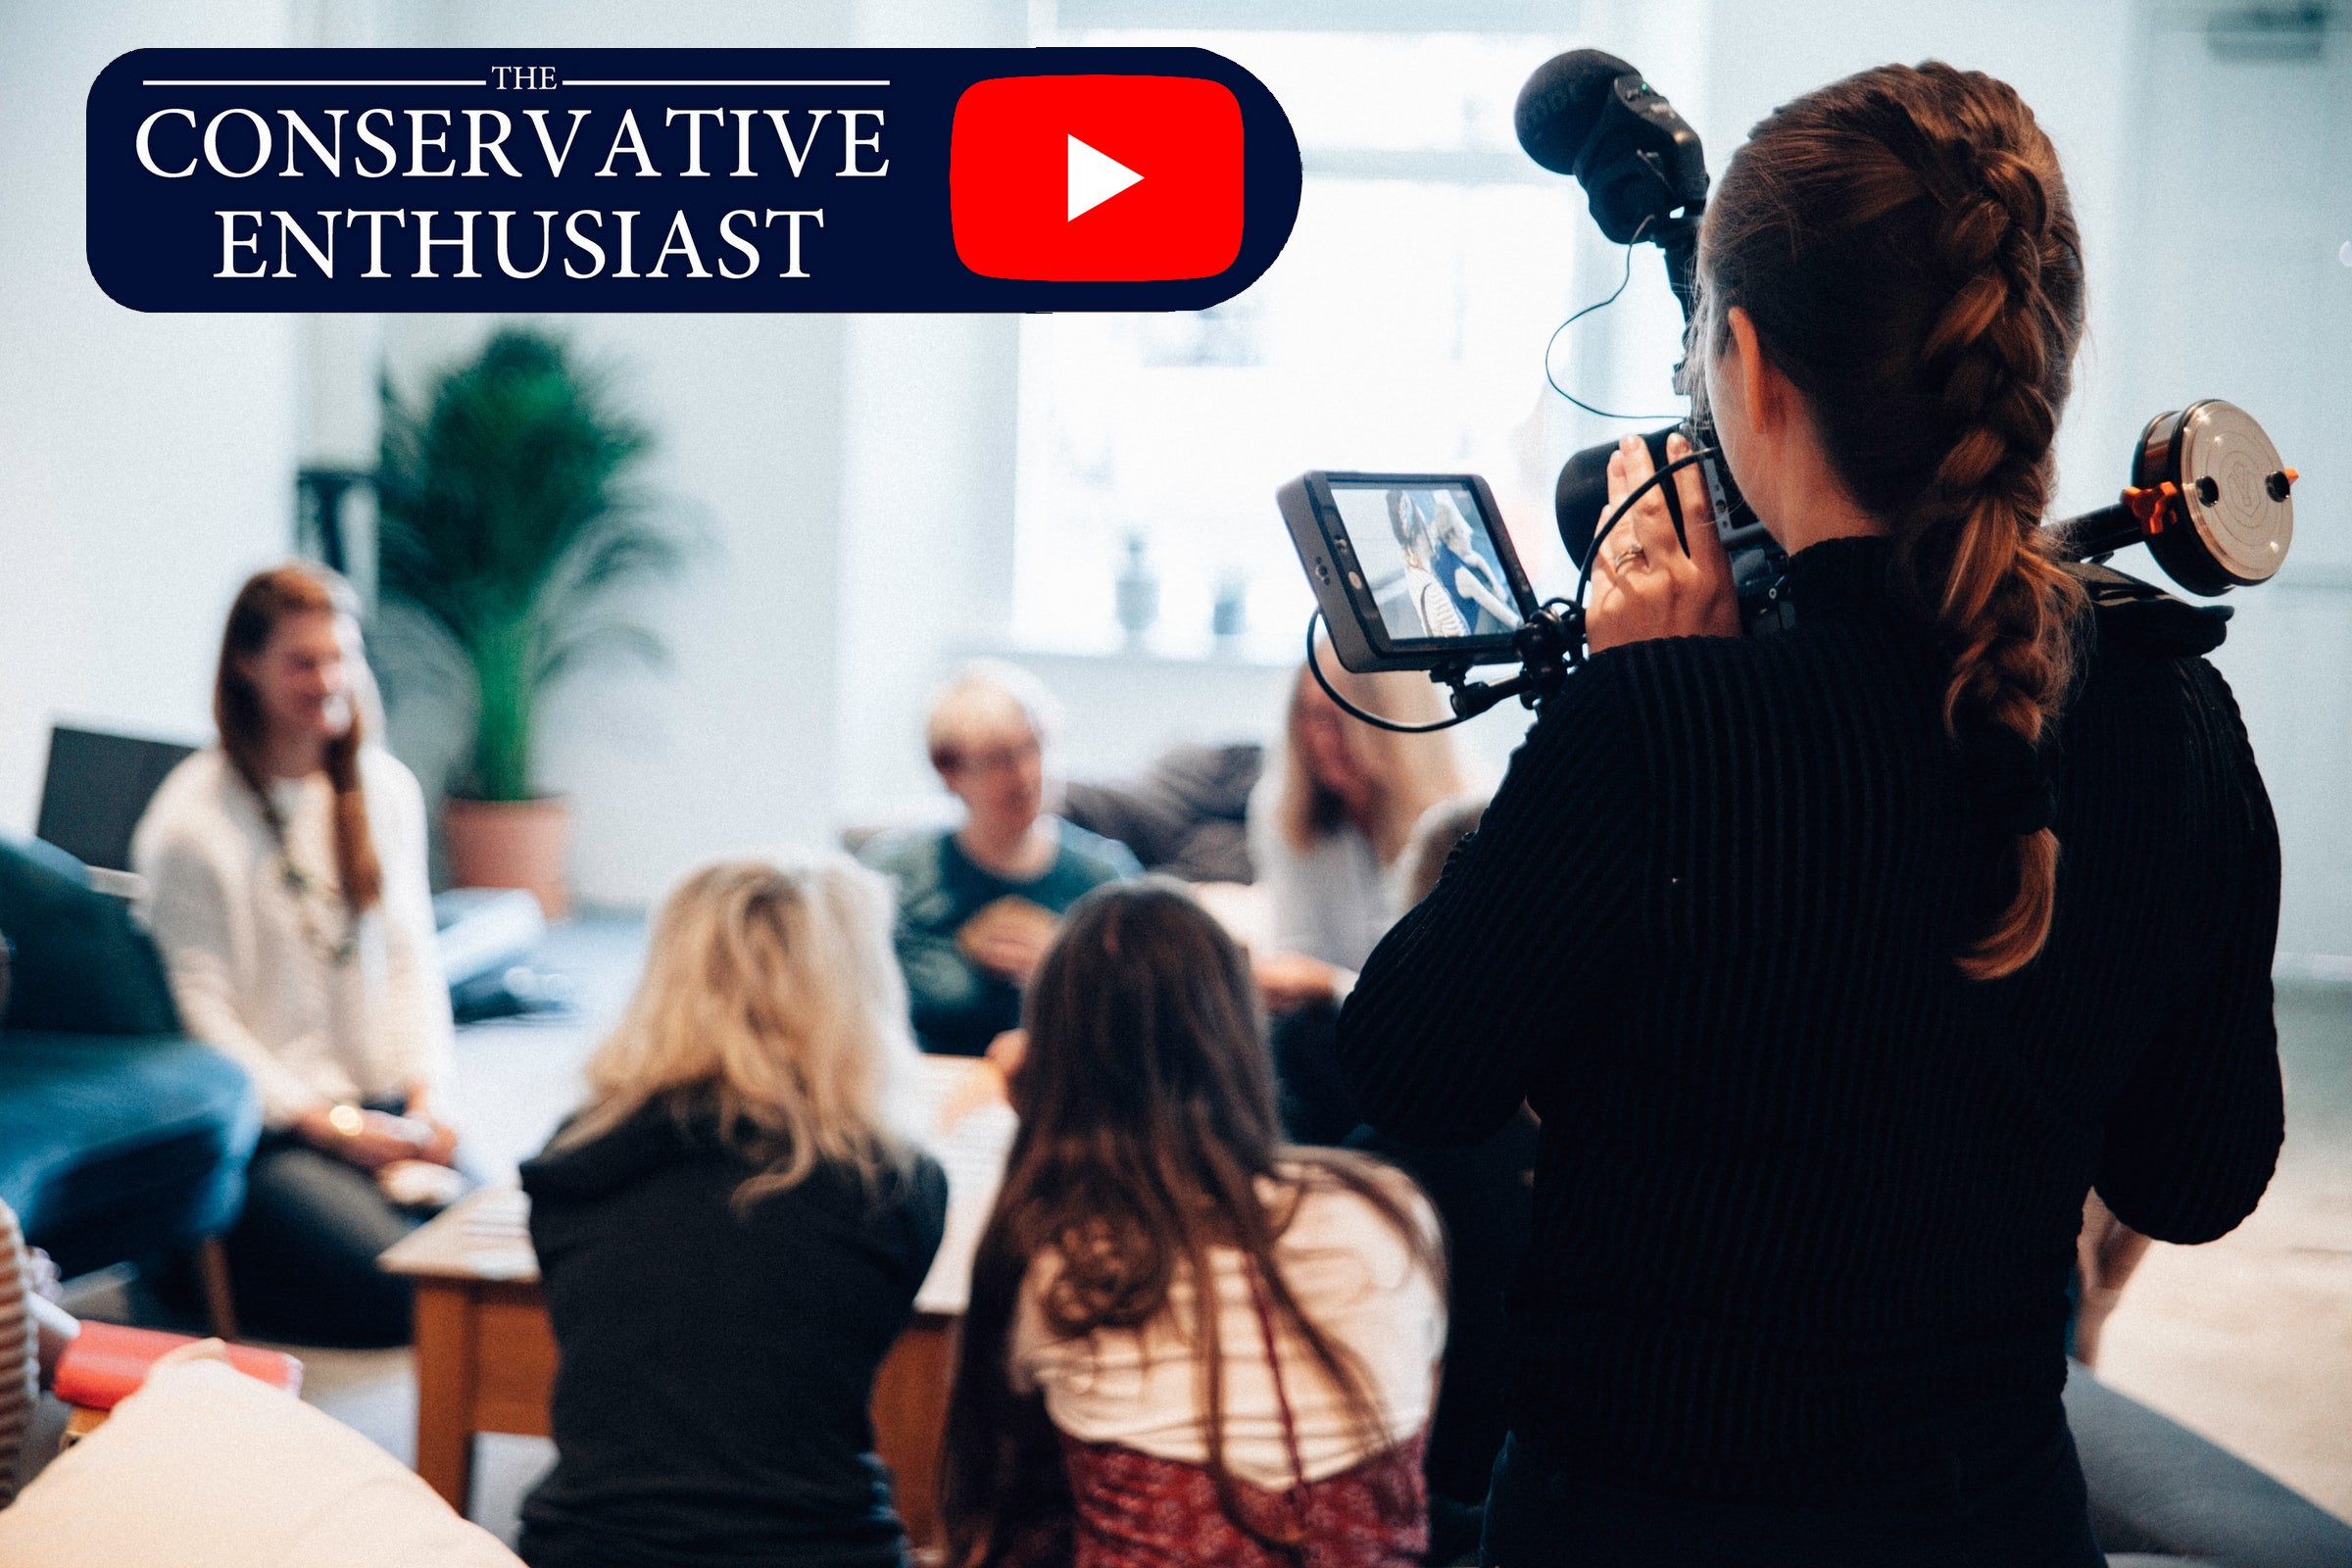 The Conservative Enthusiast